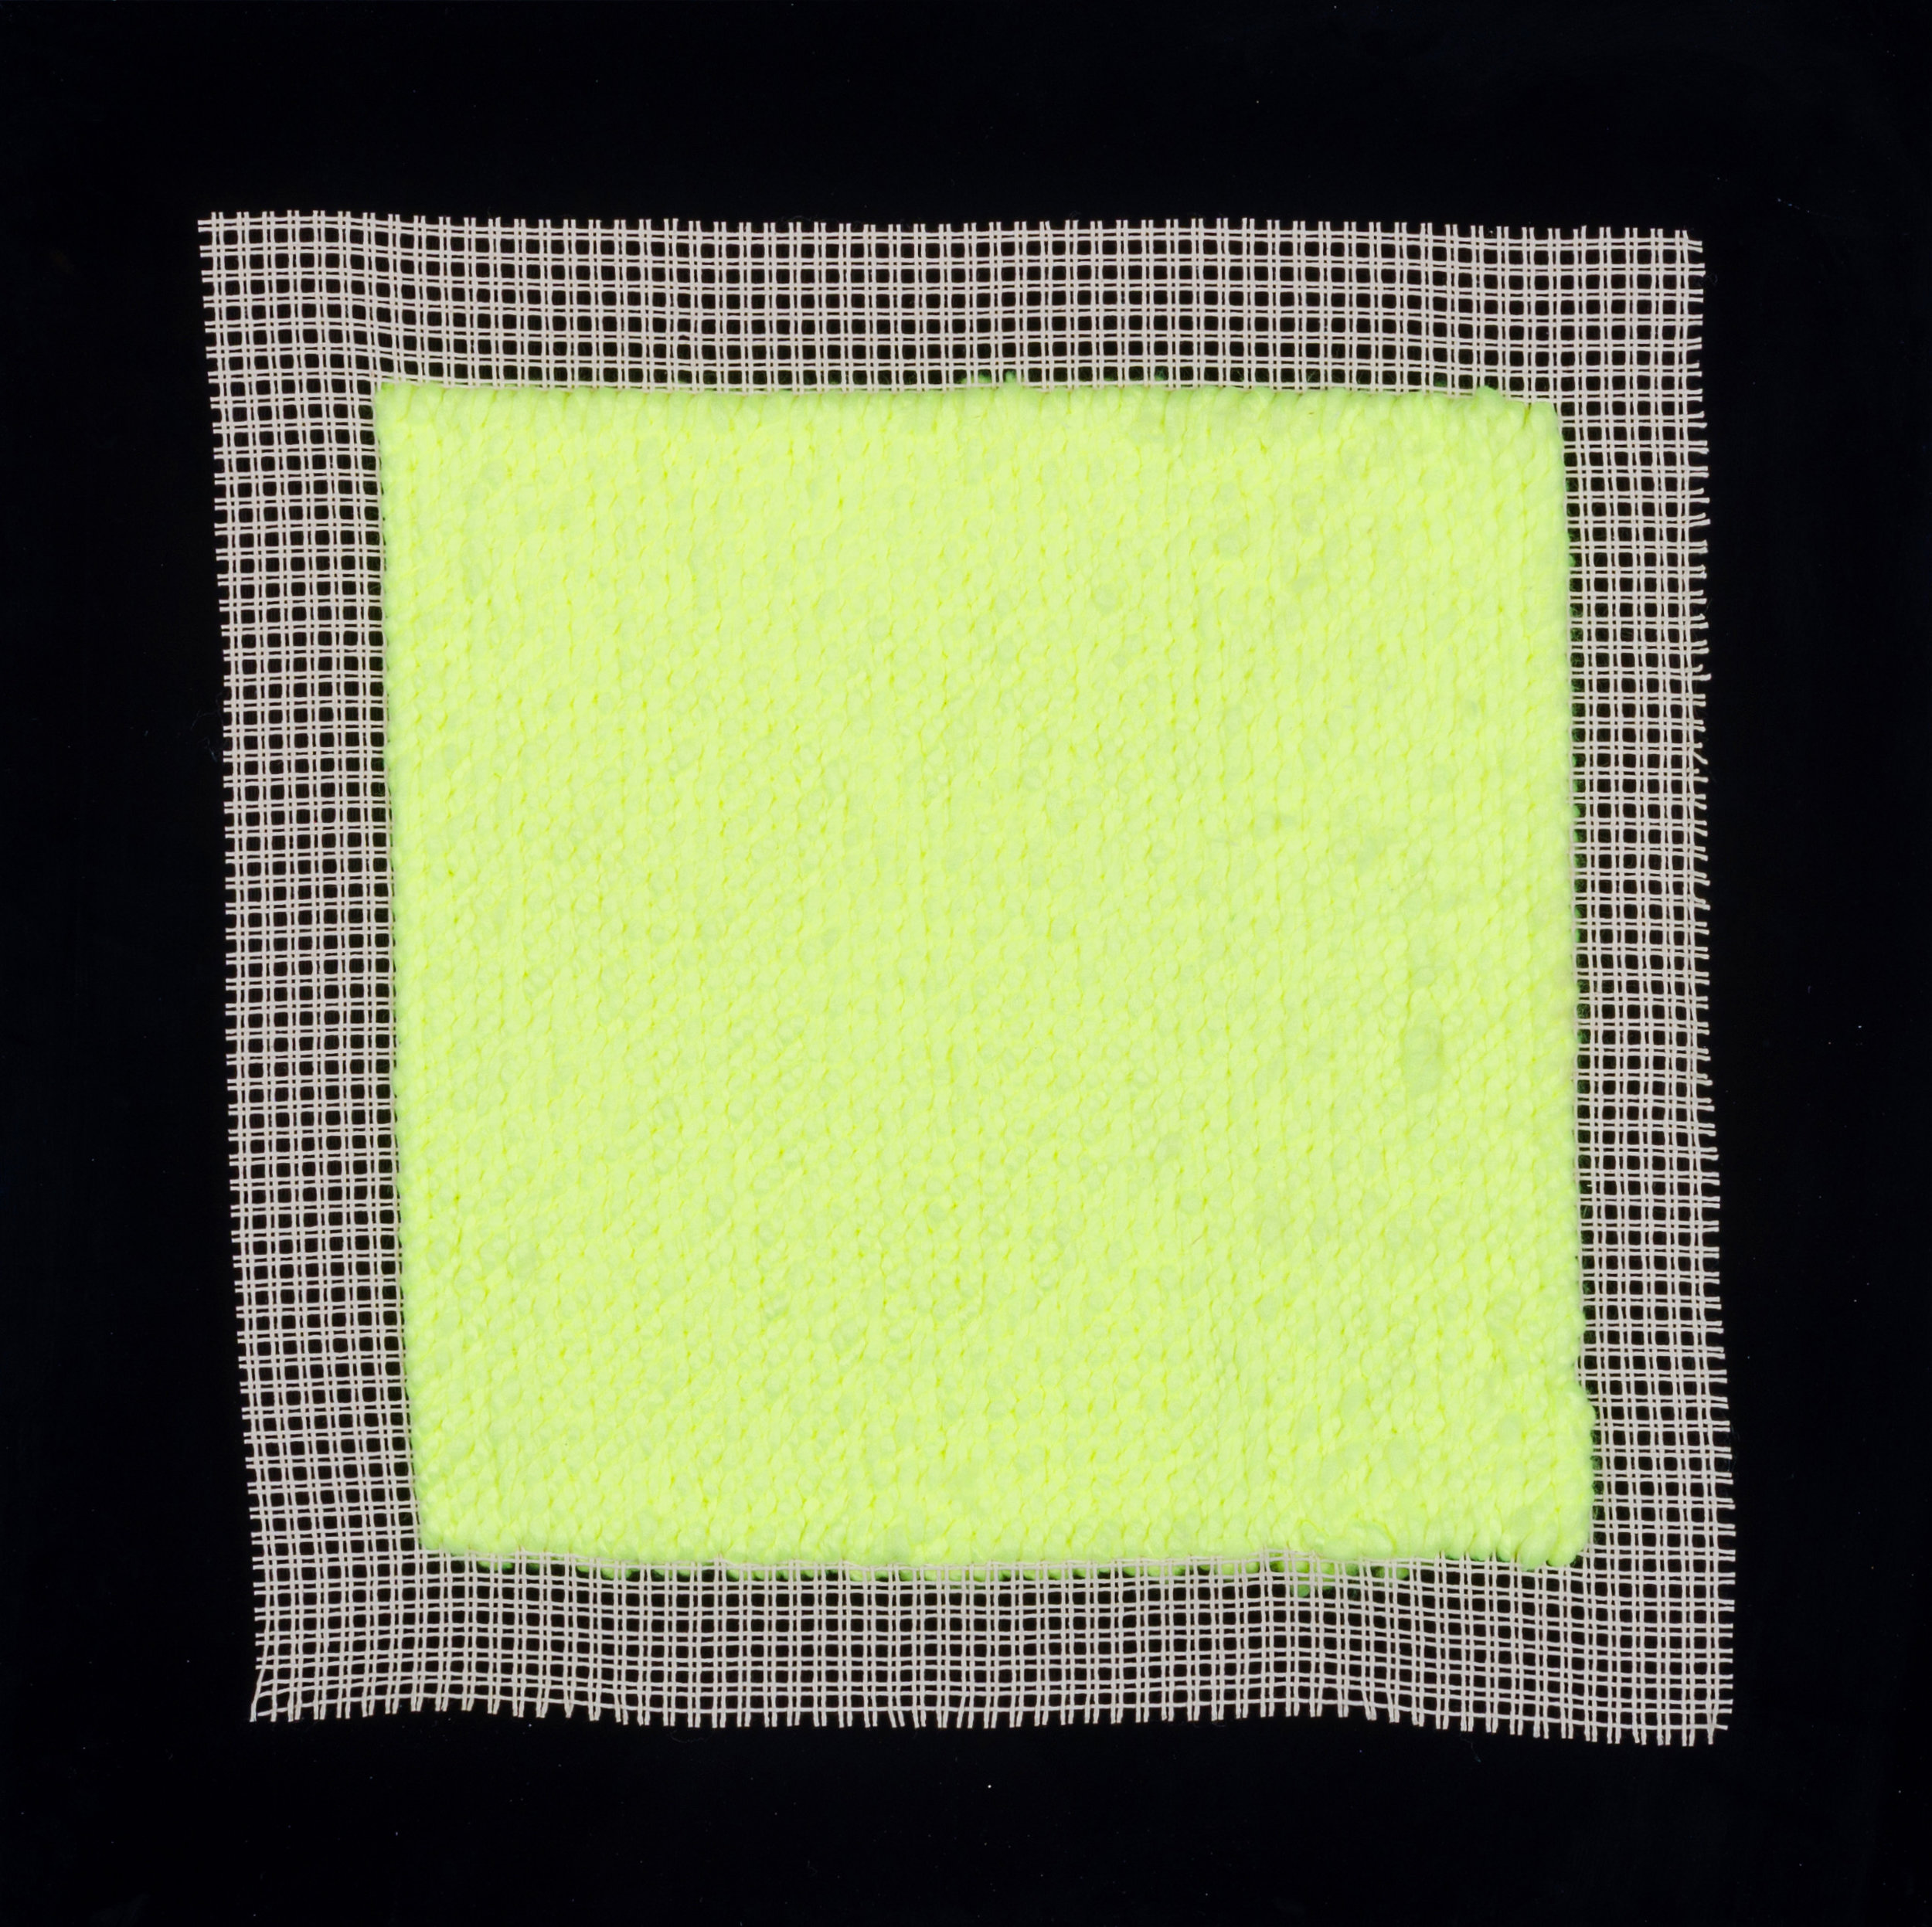 PIERRE LE RICHE. Tapestries in acid green, 2016. Acrylic yarn on tapestry mesh. 600 x 600 x 45mm - 1.jpg